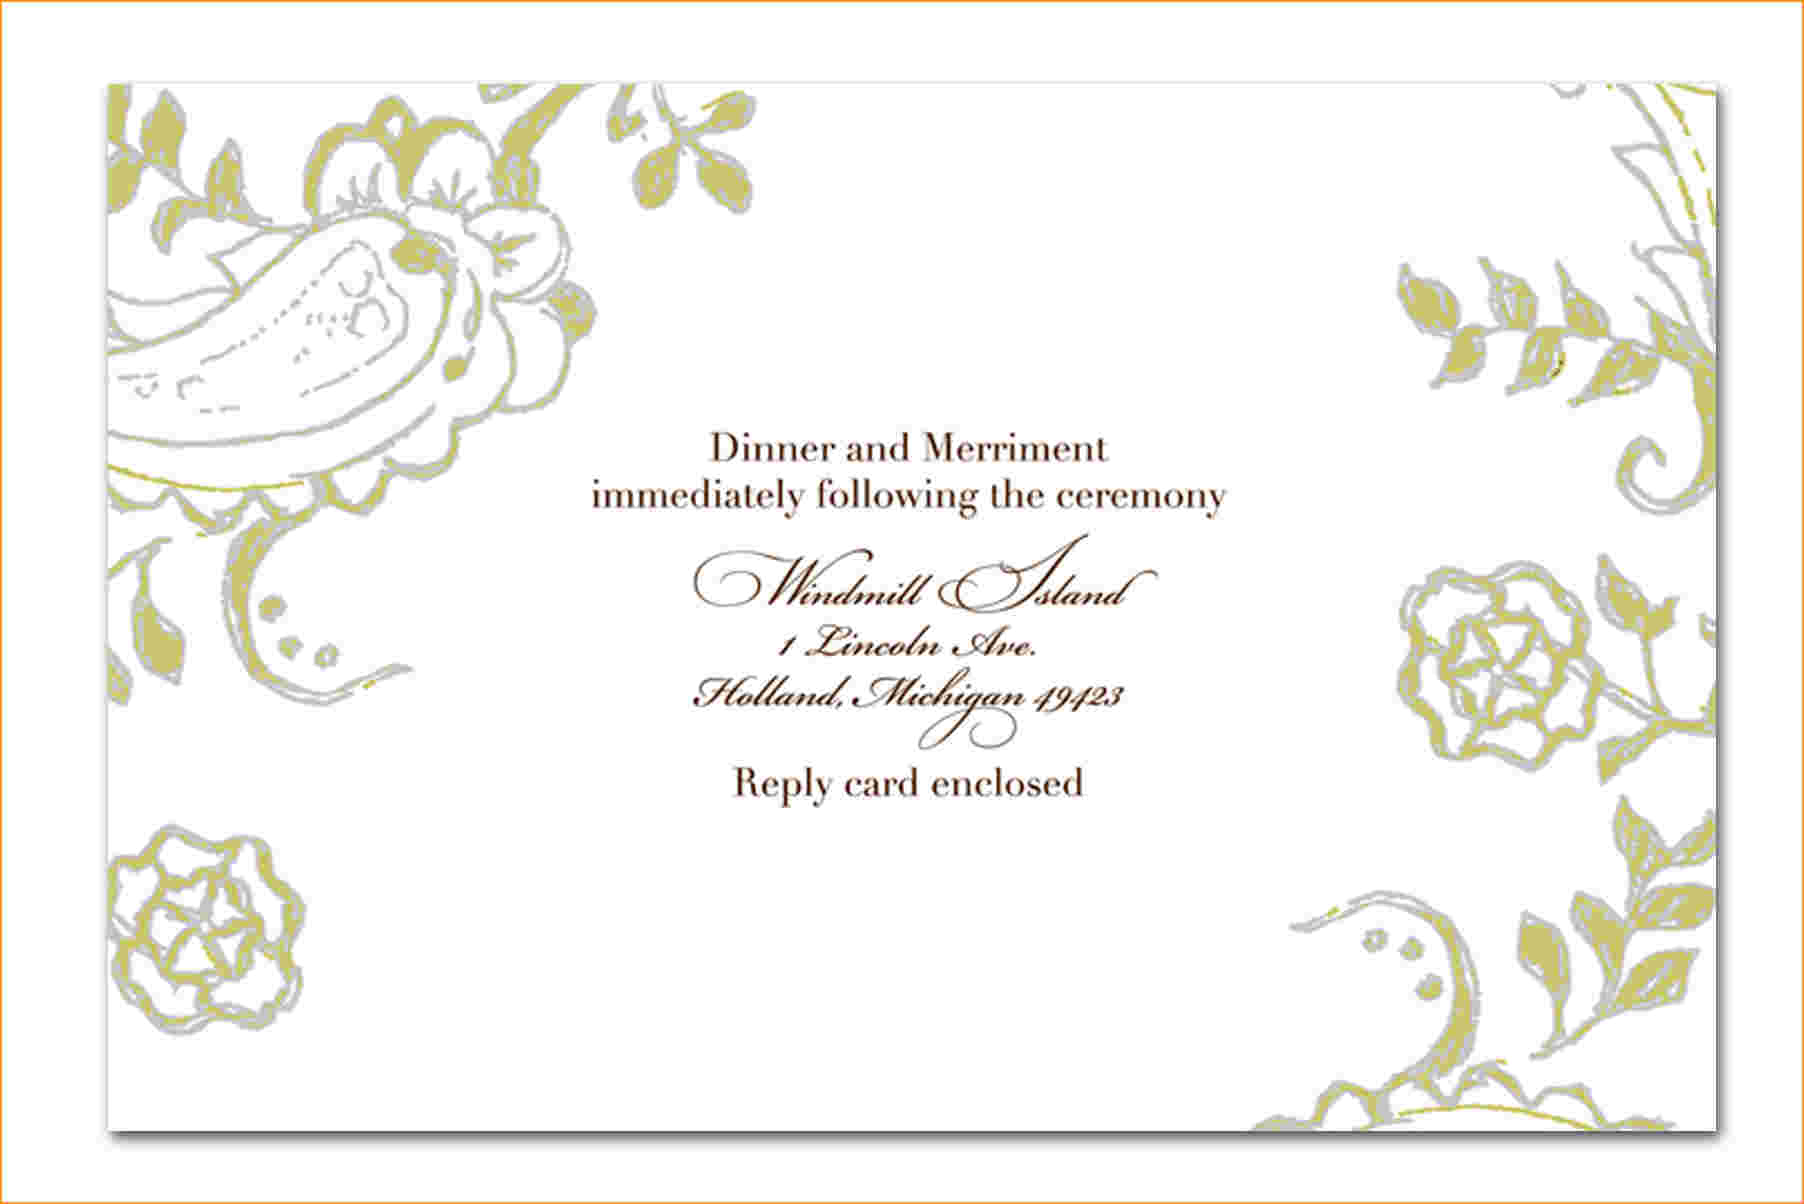 Collection Of Thousands Of Invitation Templates From All Over The World.